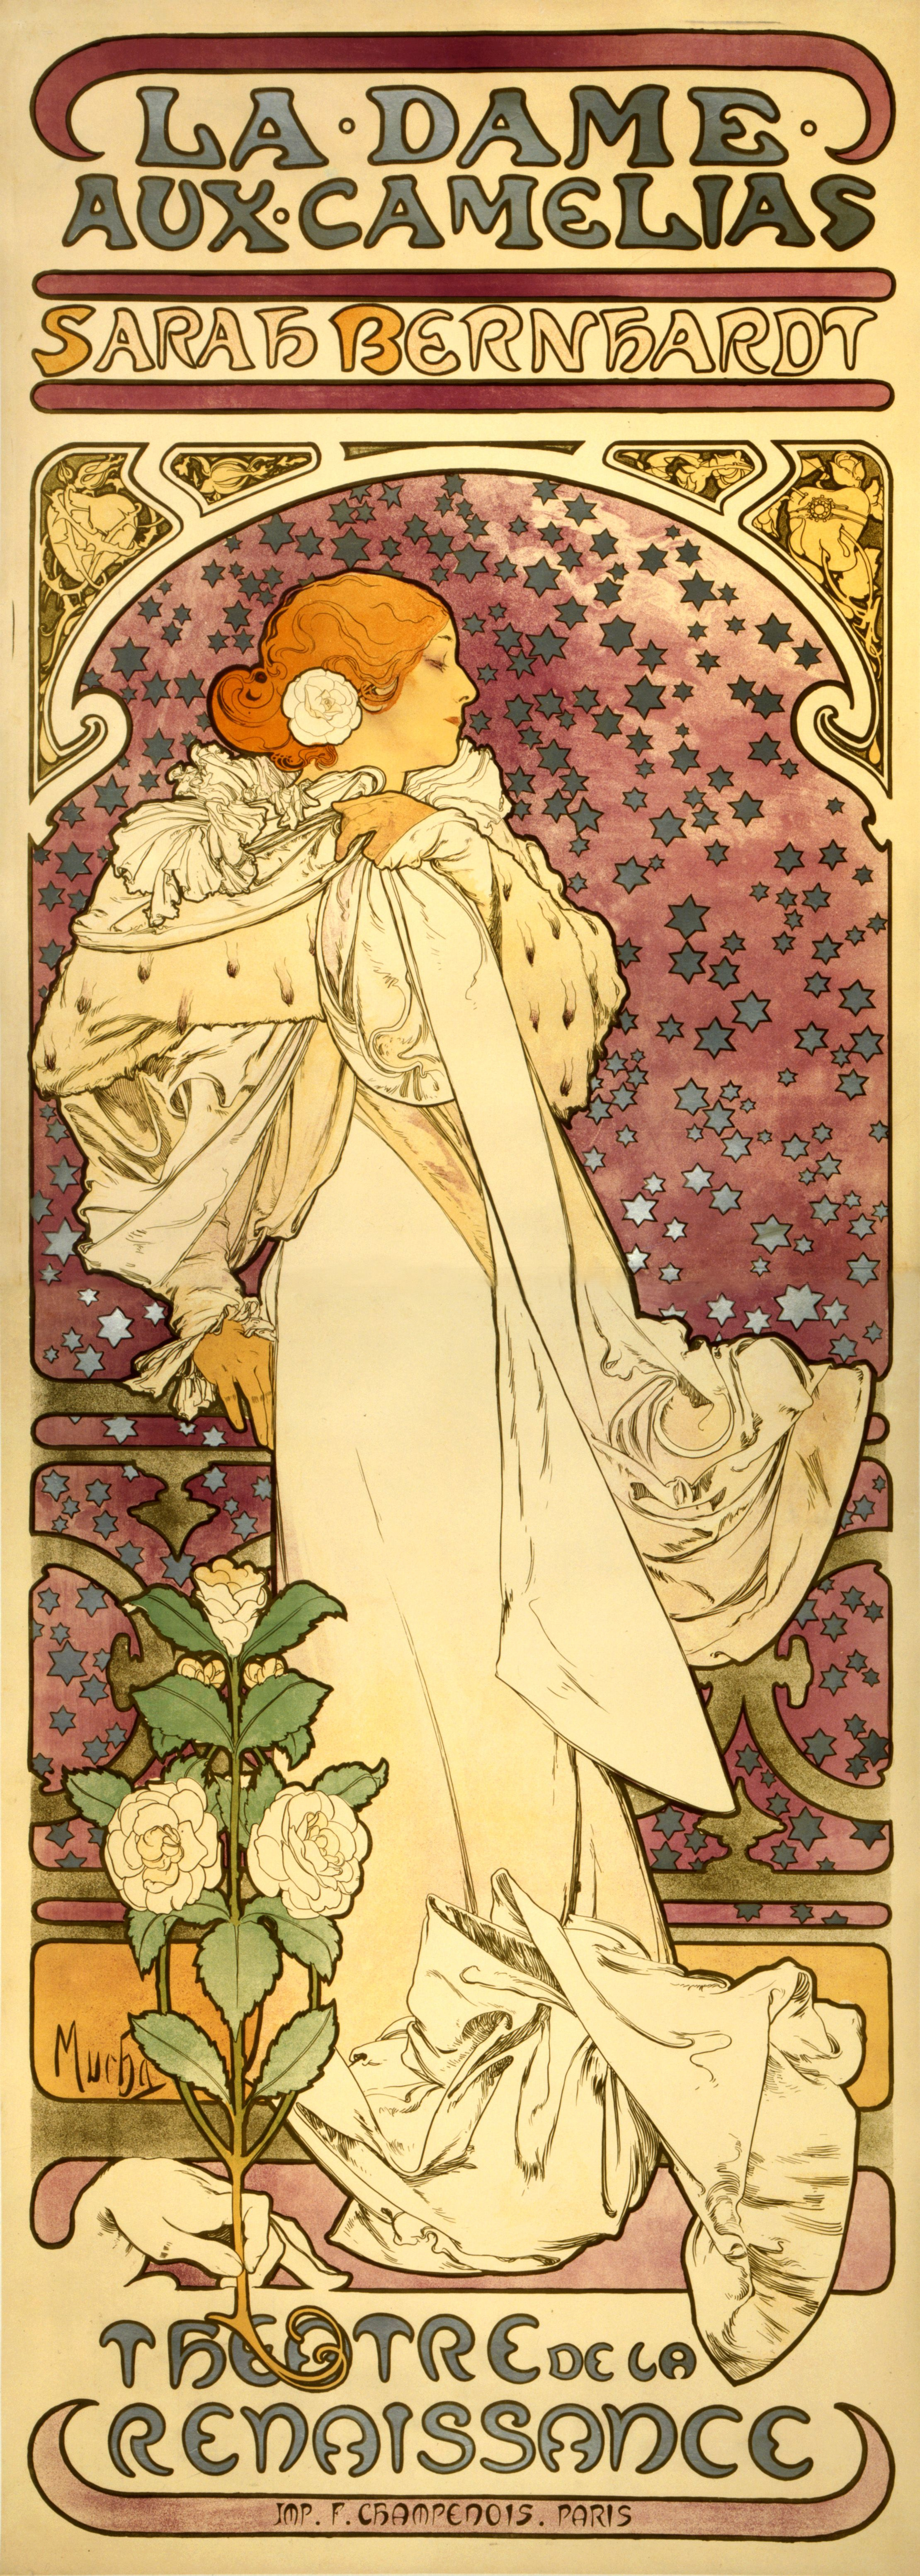 Alfons Mucha. The lady of the camellias. Promotional poster for Sarah Bernhardt